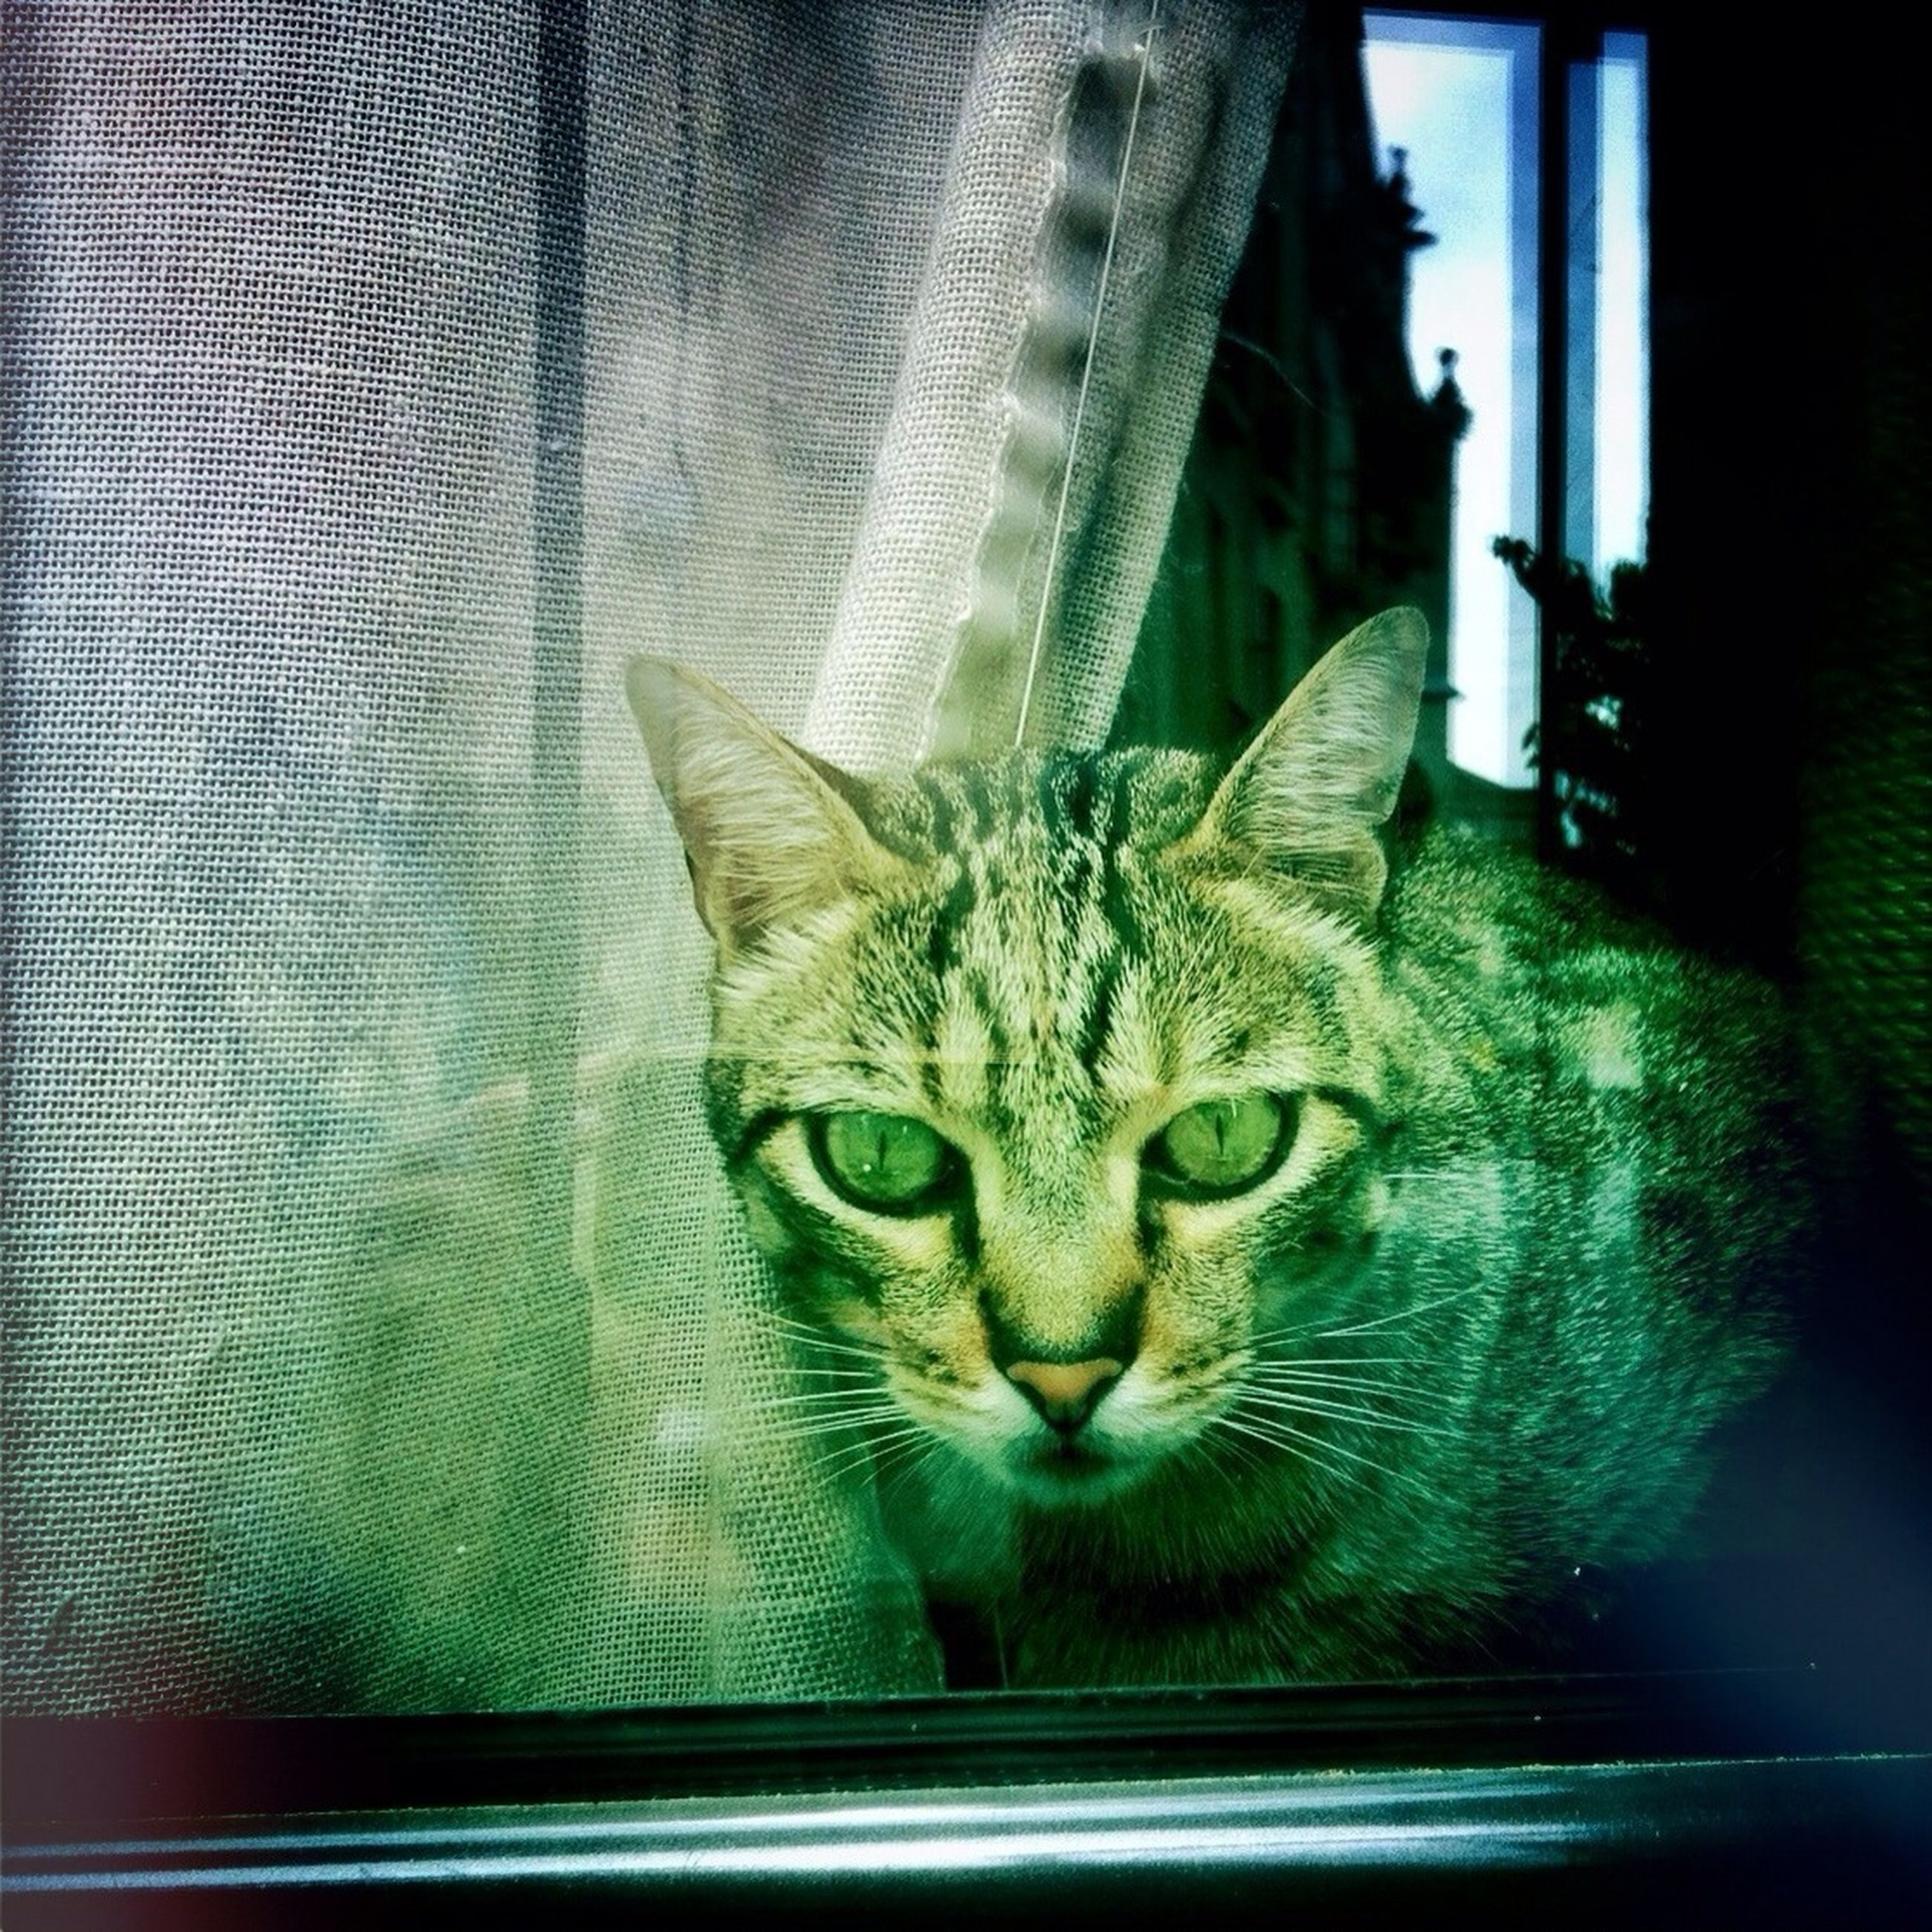 indoors, domestic cat, cat, pets, domestic animals, one animal, animal themes, mammal, feline, whisker, portrait, close-up, looking at camera, home interior, relaxation, animal head, window, no people, staring, home